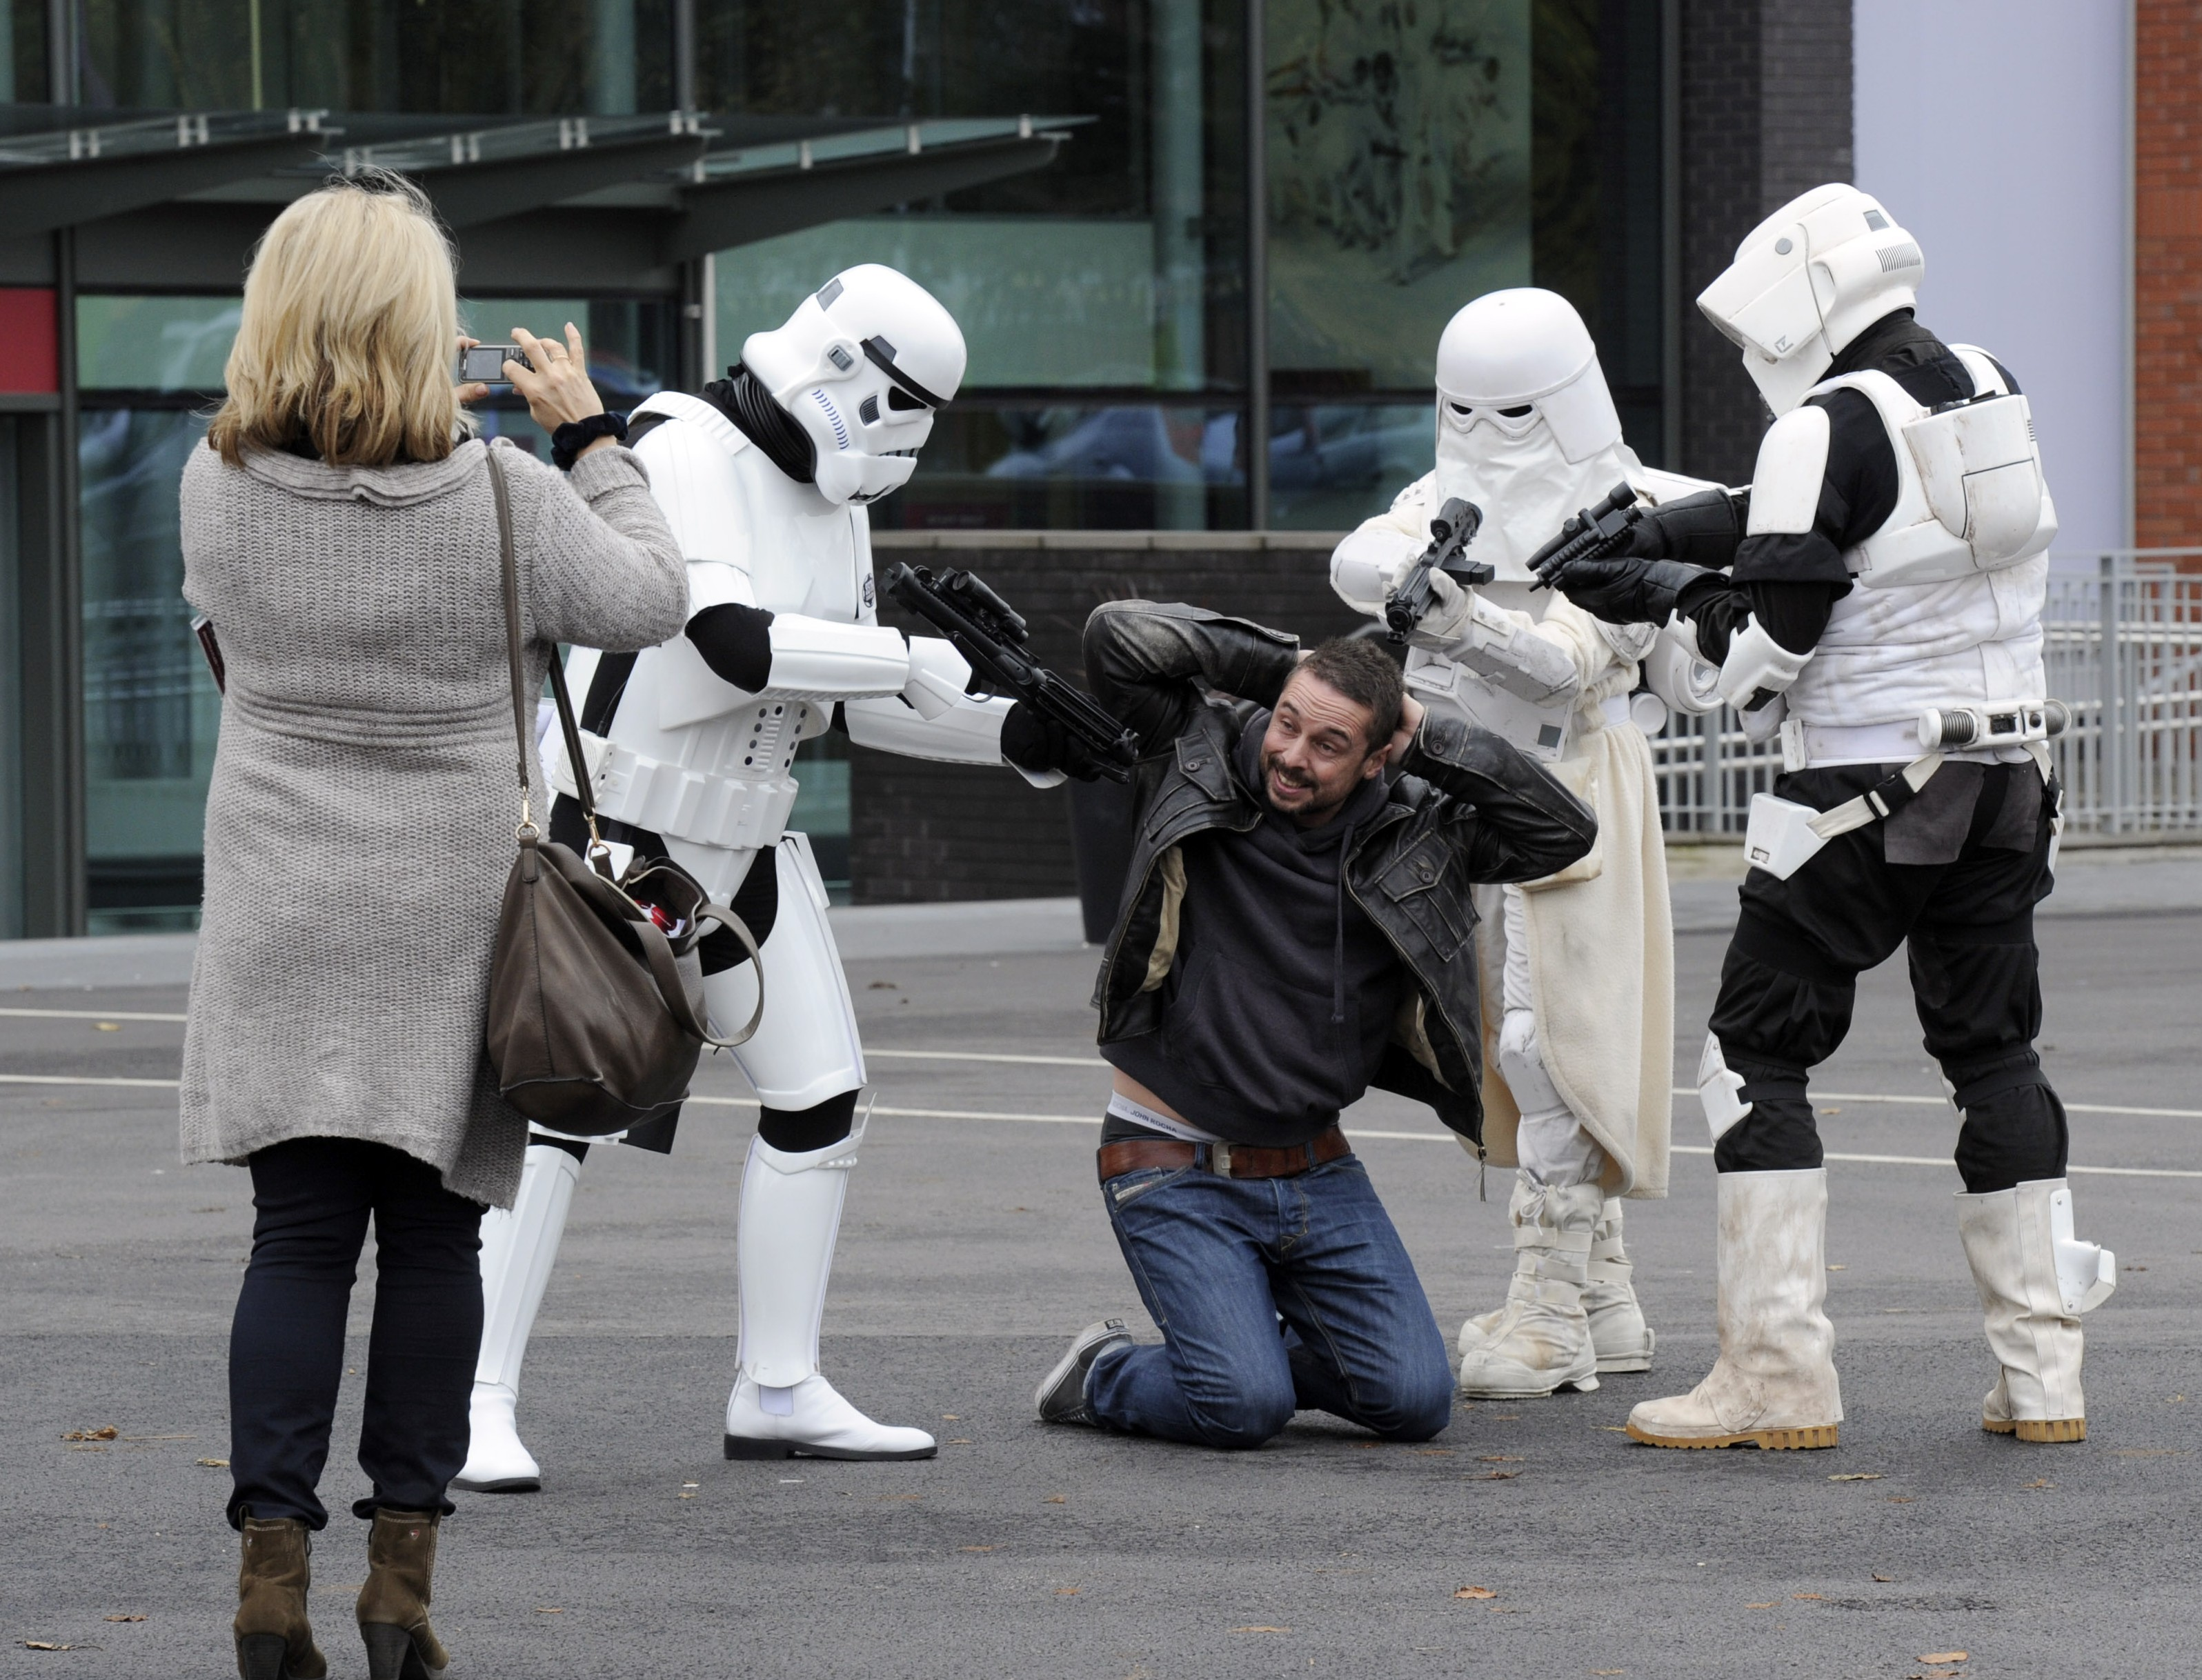 Stormtroopers brought in as thousands of hopefuls turn up to Star Wars Episode 7 auditions